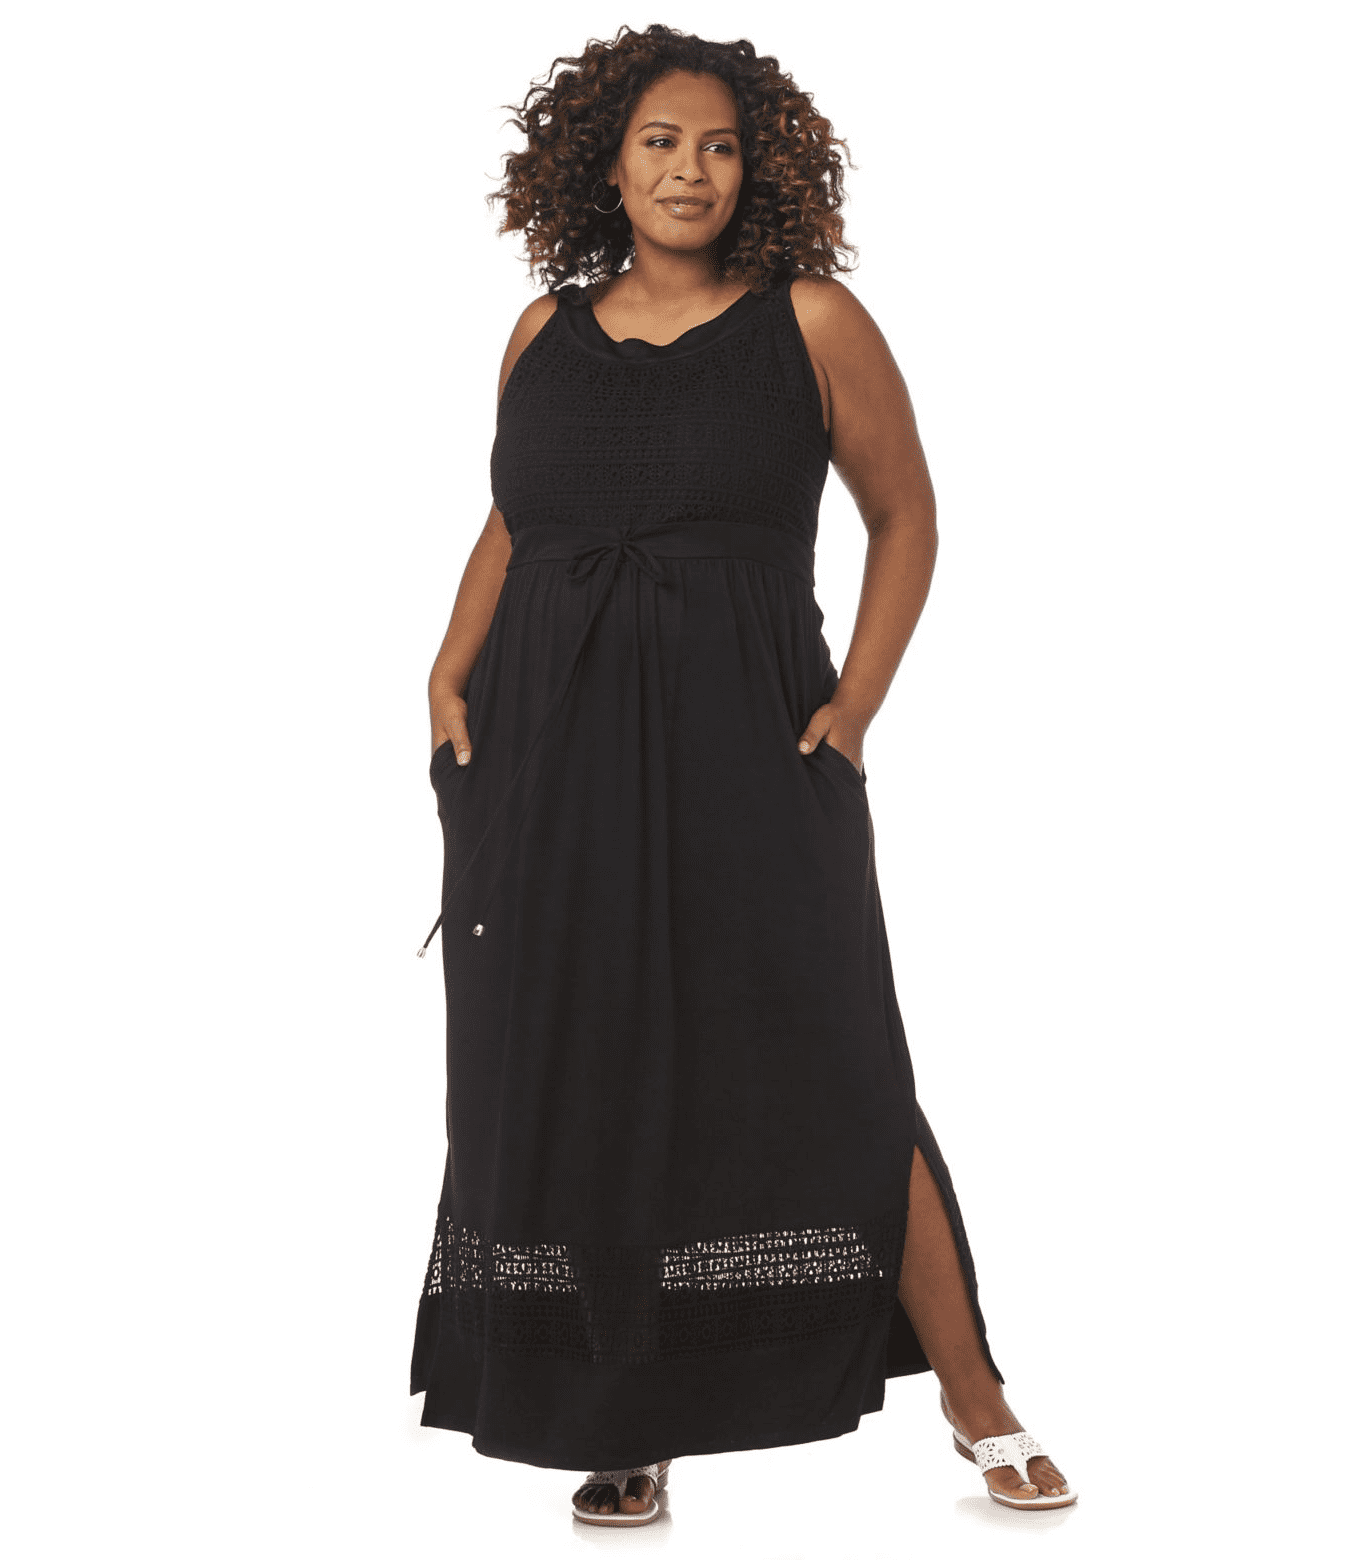 Maxi Dresses Take your look to new fashion lengths with a head-turning maxi dress. Our striking new-season selection offers a gorgeous choice of must-have maxi styles, from chic stripes and bold prints to cool colour-blocking.